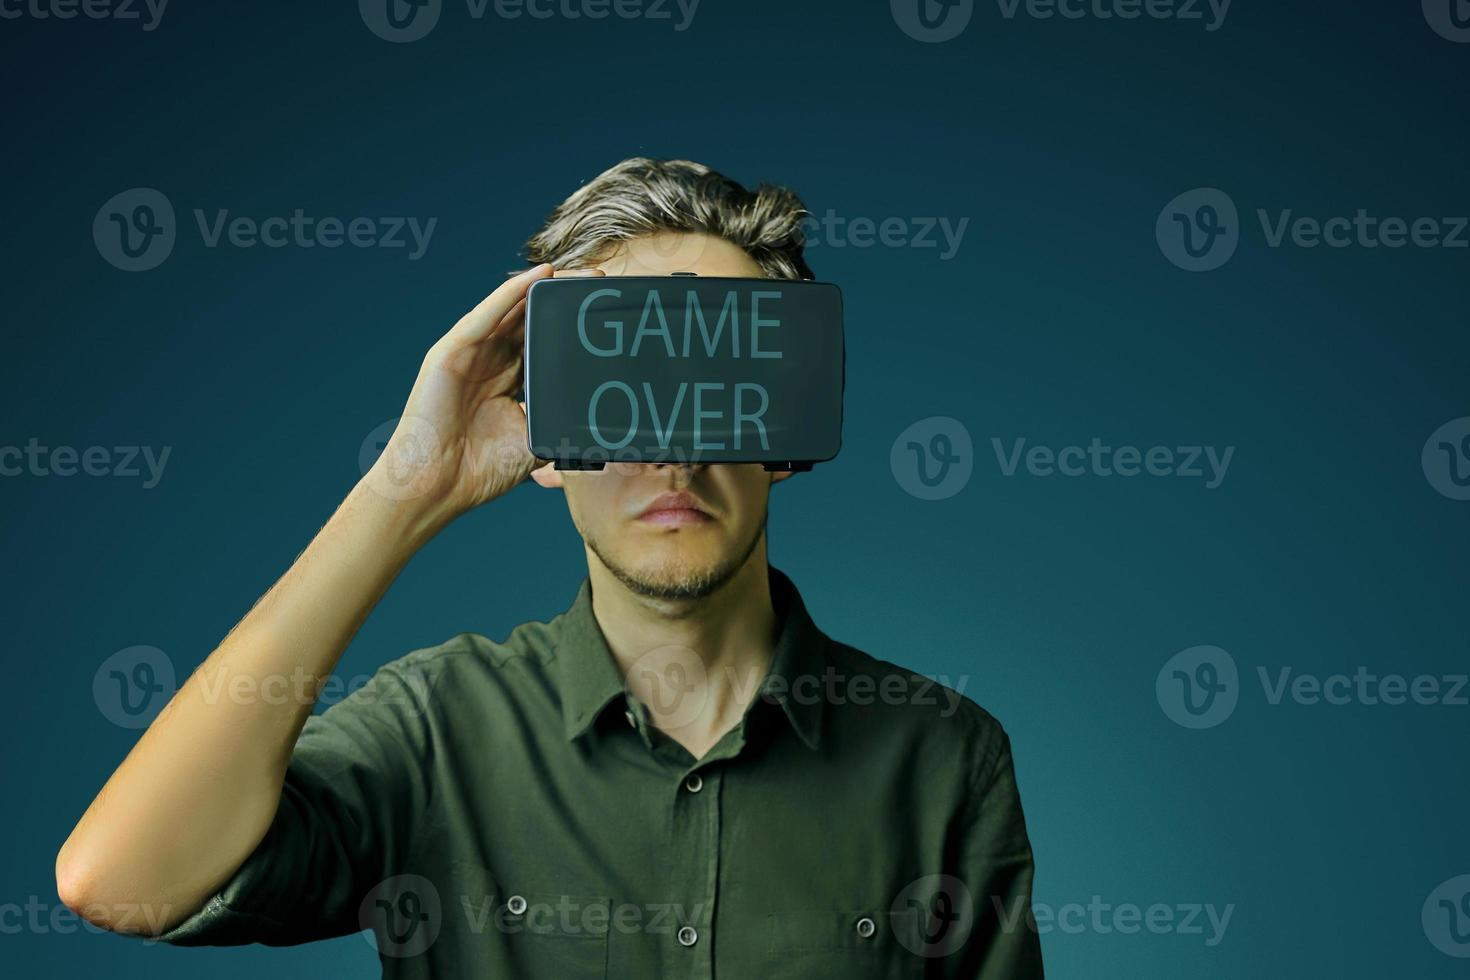 Man uses VR and game over for him photo